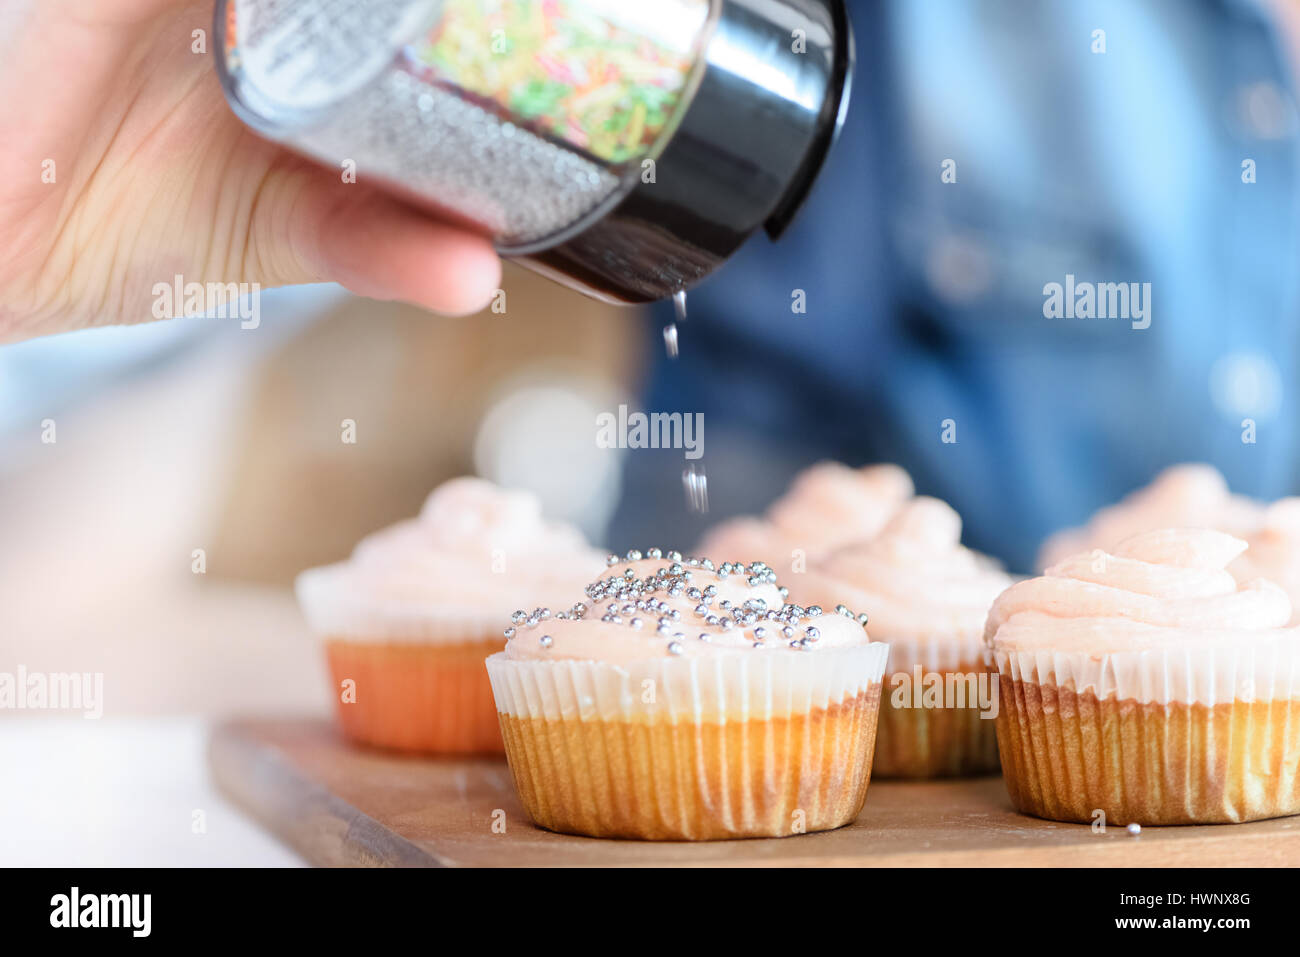 stock photo close up view of woman decorating cupcakes with confetti